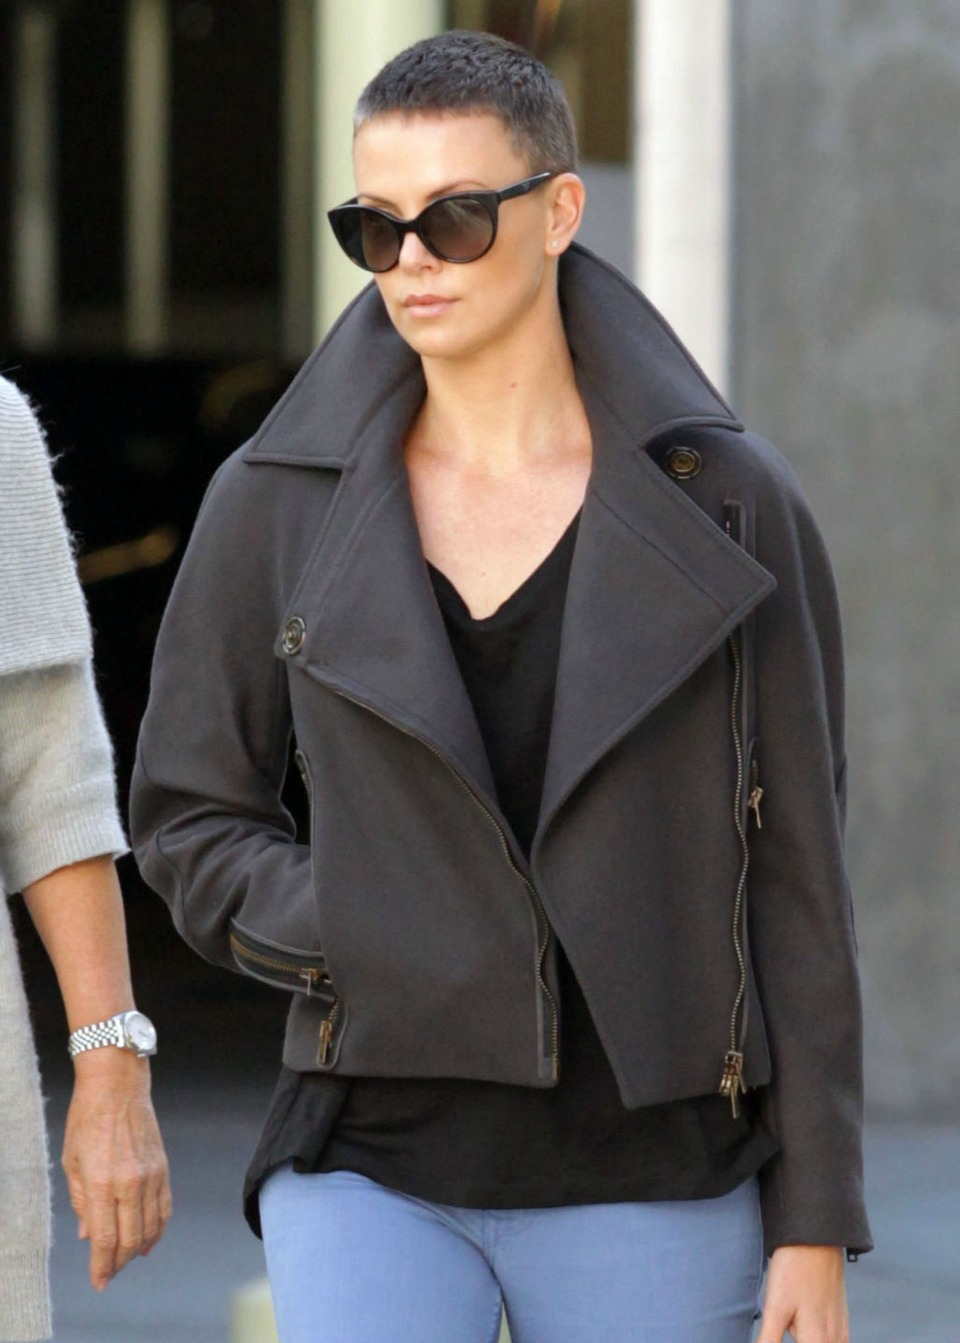 Charlize Theron 2011. Charlize Theron (2011)